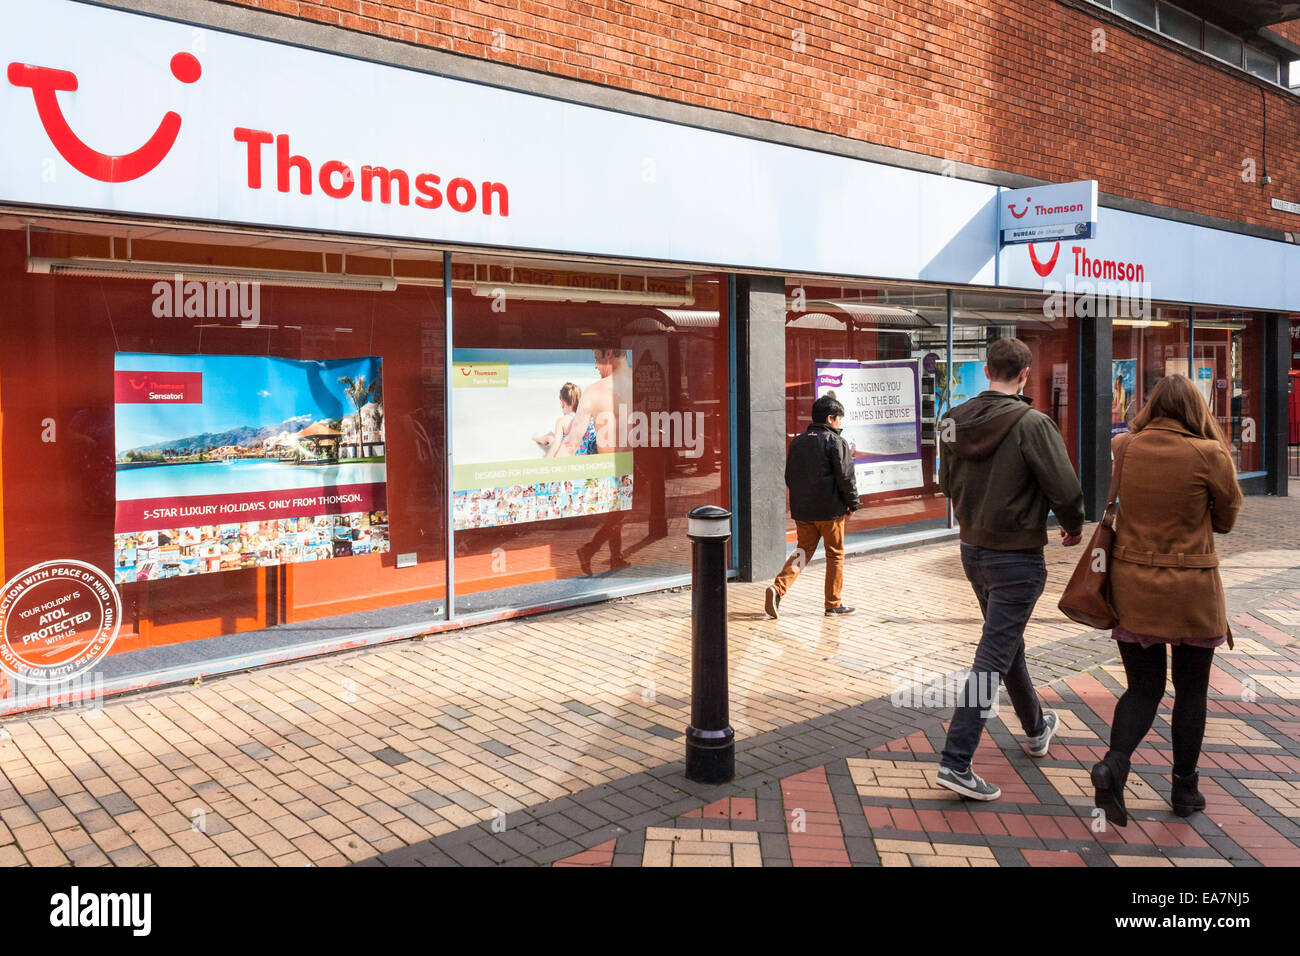 Thomson Holidays Reisebüro, Maidenhead, Berkshire, England, GB, UK. Stockbild